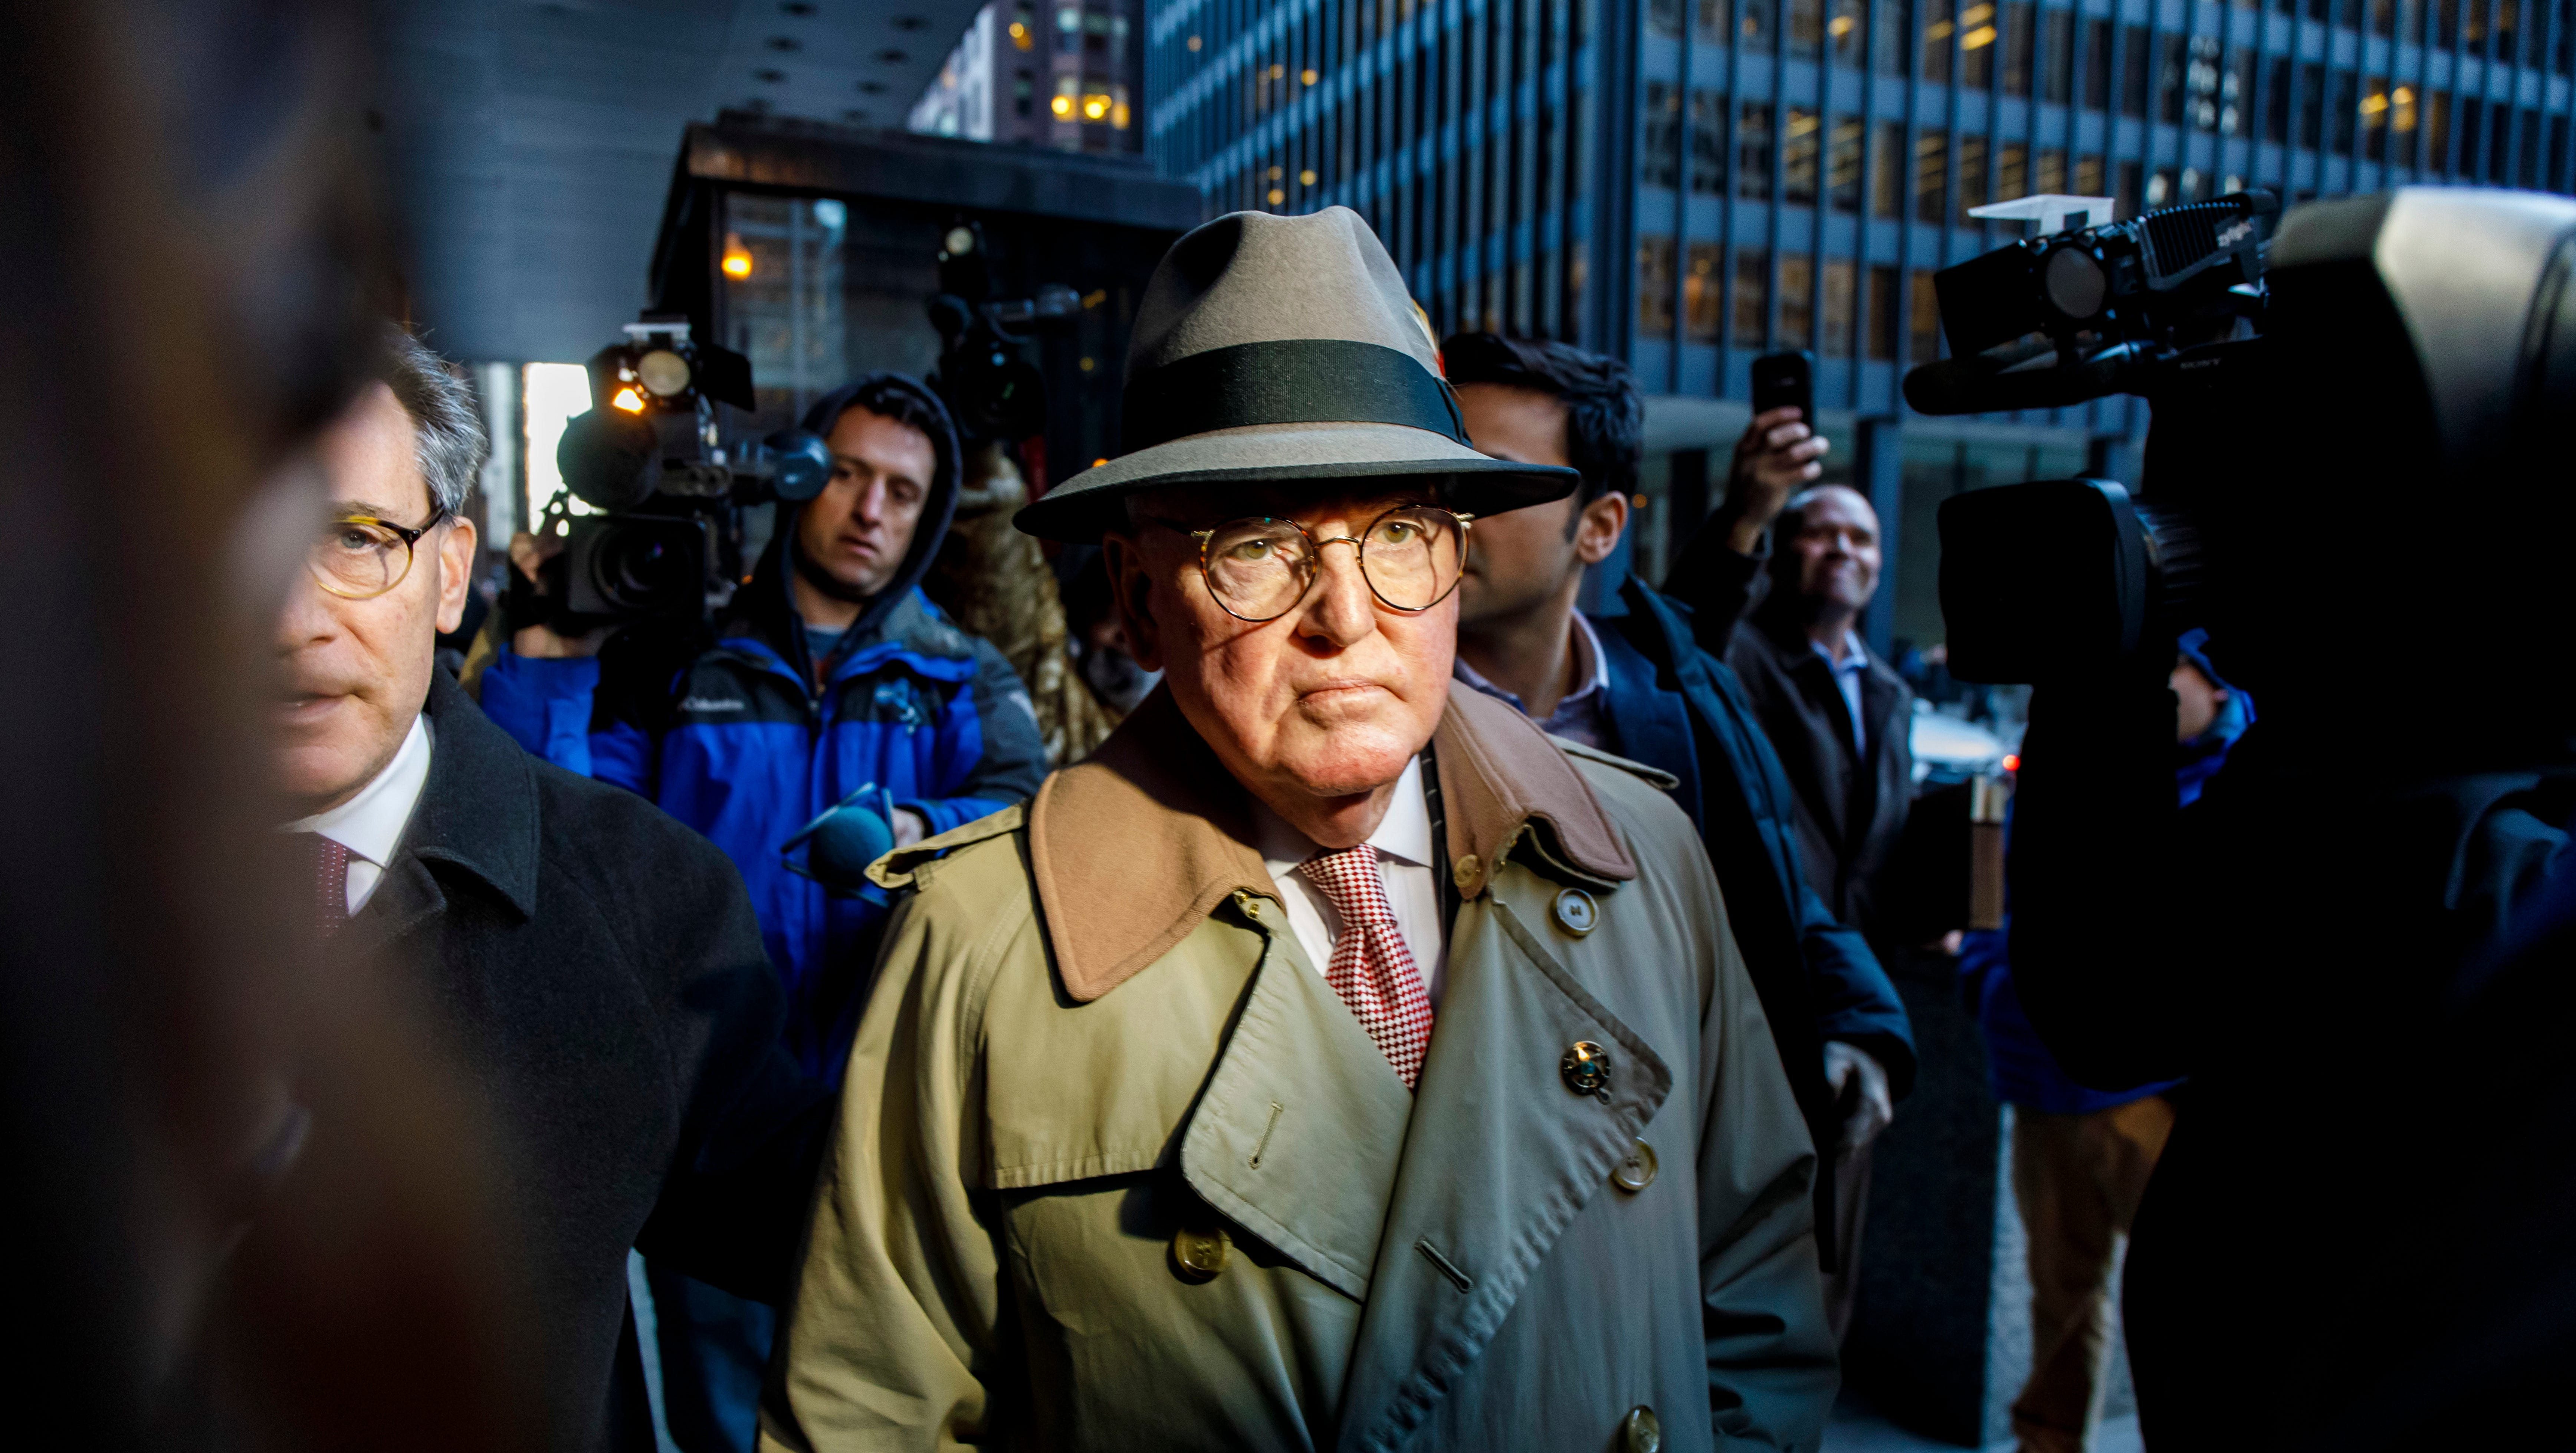 Alderman Ed Burke, 75, walks out of the Dirksen Federal Courthouse following his release after turning himself in, Thursday, Jan. 3, 2019, in Chicago. Burke, one of the most powerful City Council members in Chicago, is charged with one count of attempted extortion in trying to shake down a fast-food restaurant seeking city remodeling permits, according to a federal complaint.